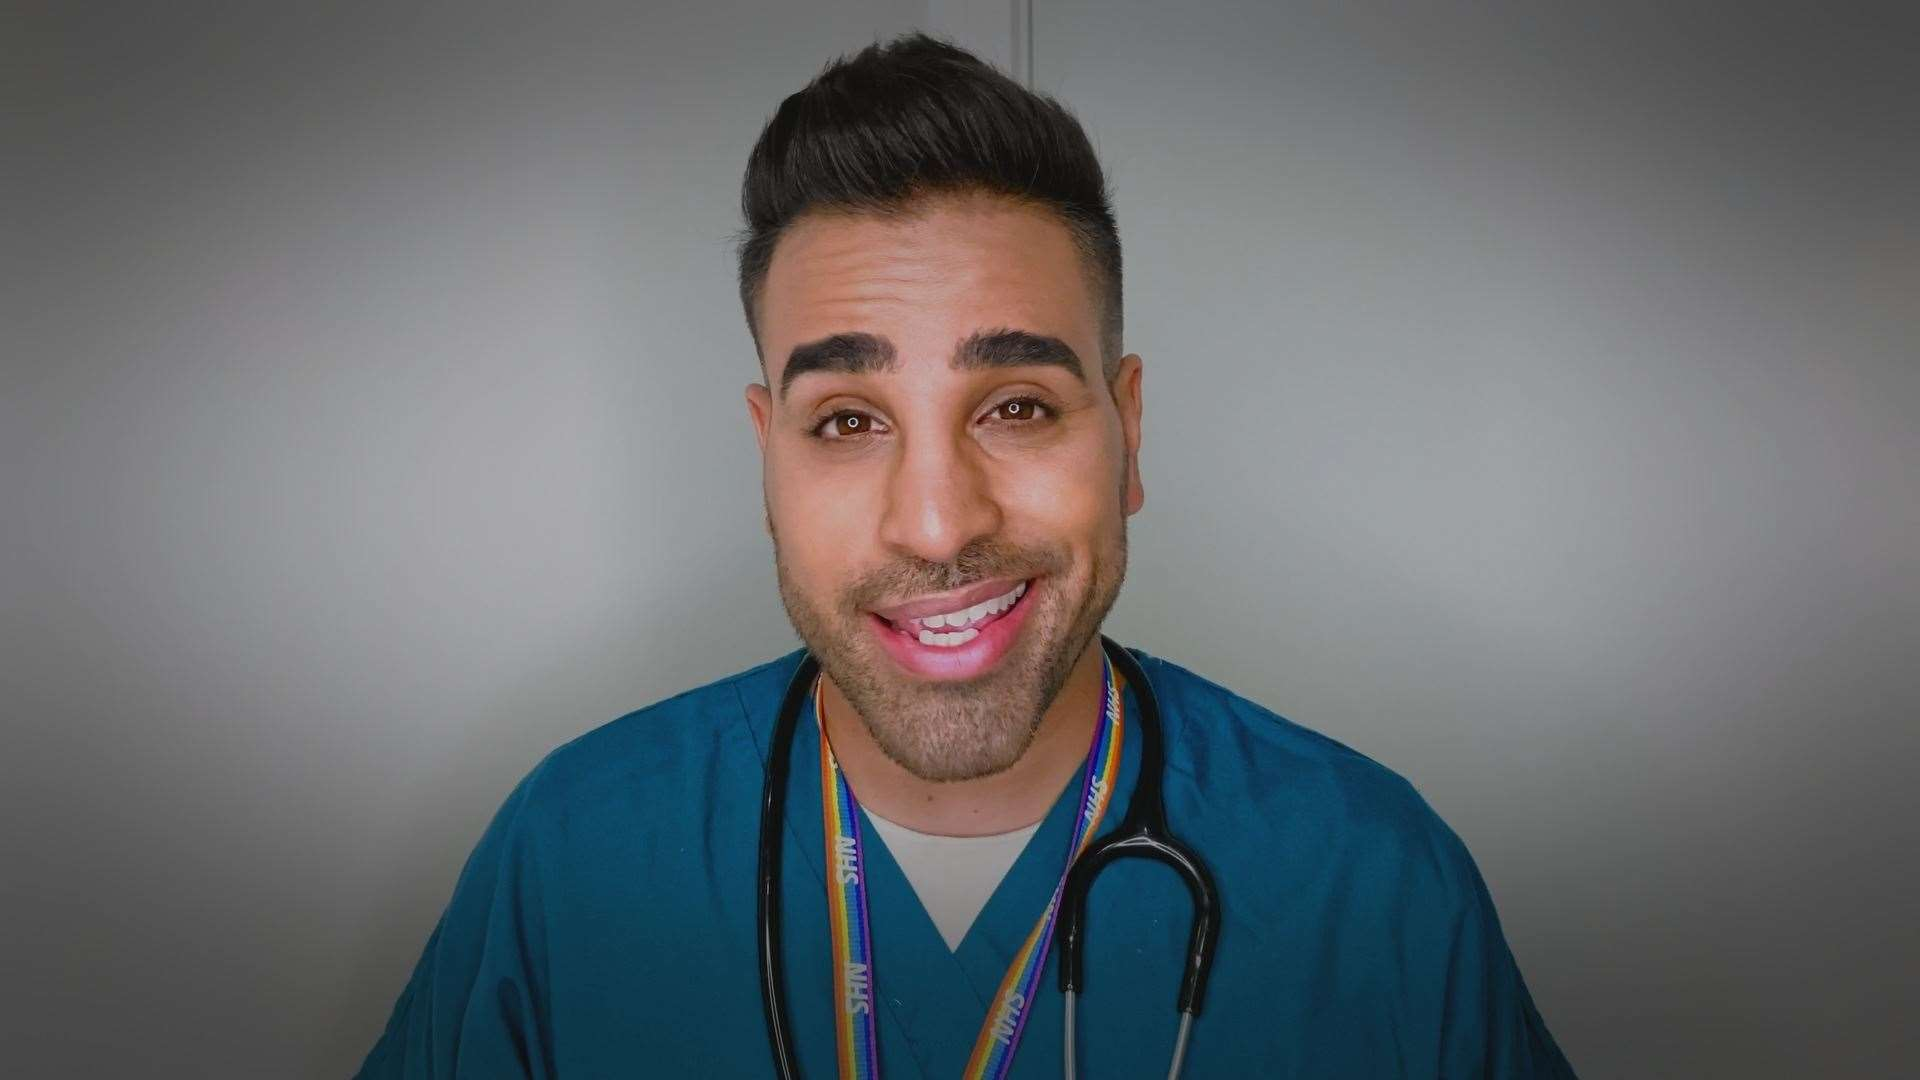 Medway-born Dr Ranj is currently working at a hospital in London